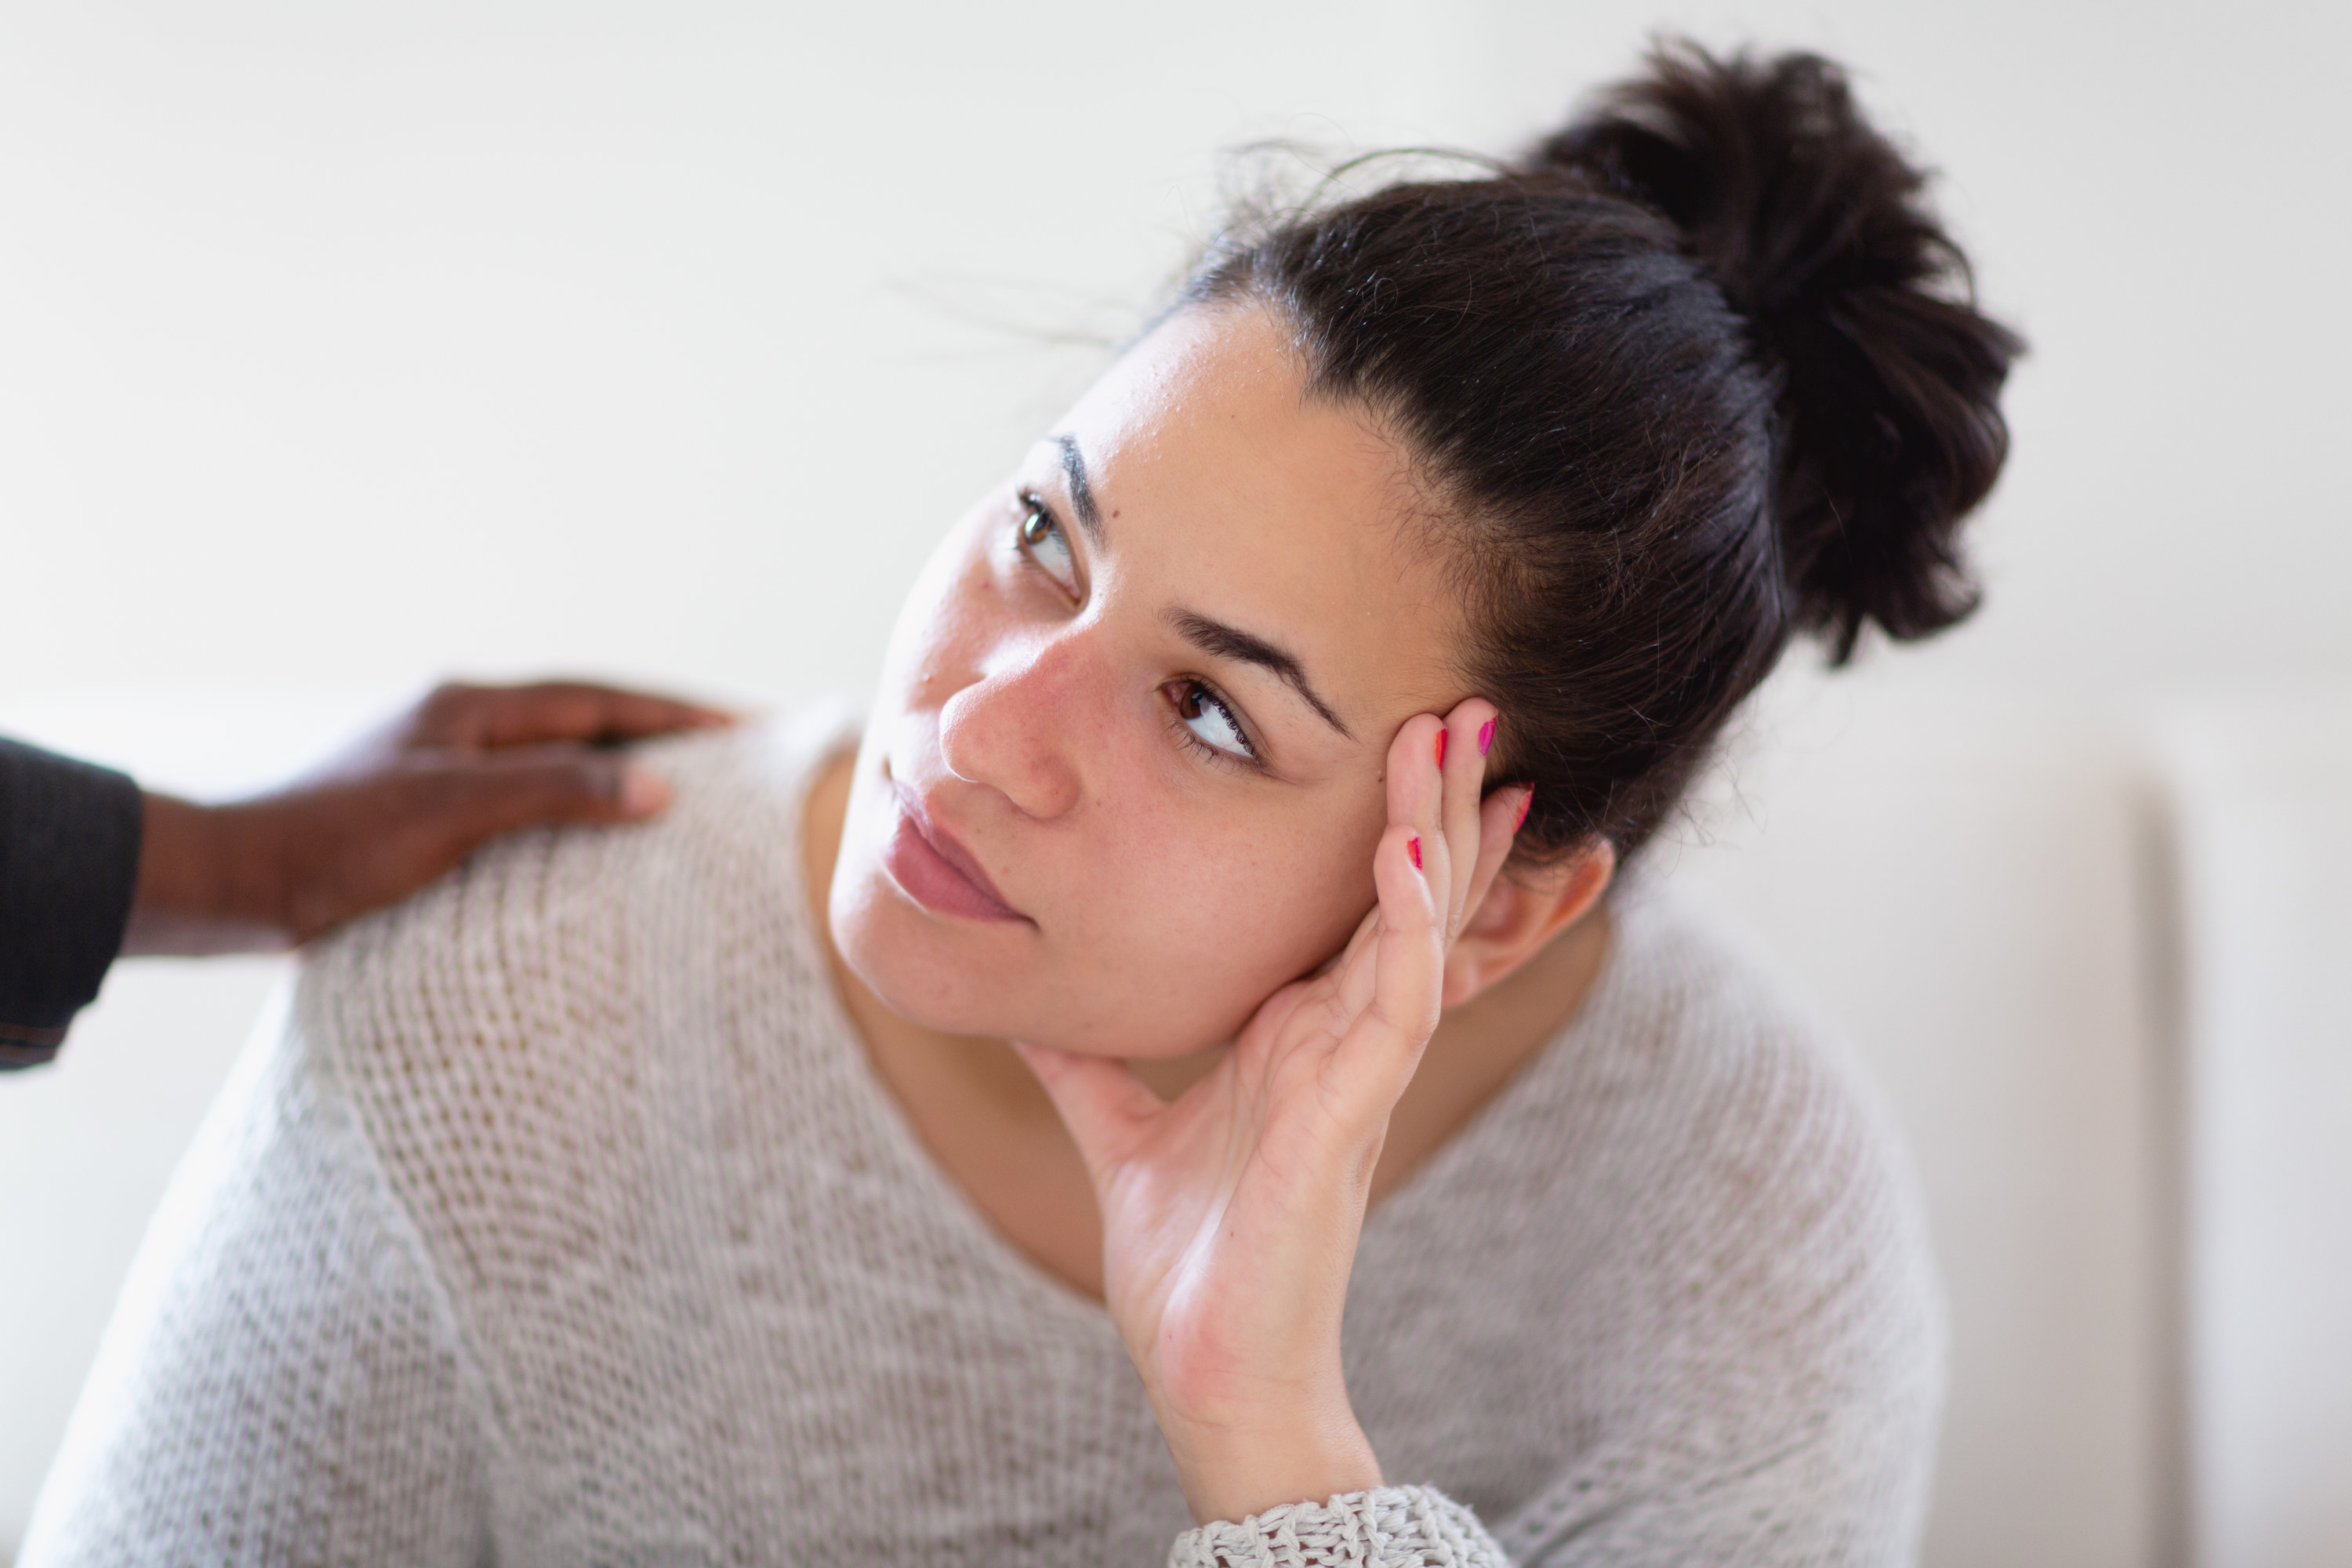 Young Hispanic woman looking up to the person who is putting a hand on her shoulder, could be support, mentoring, consoling in psychotherapy or friendship